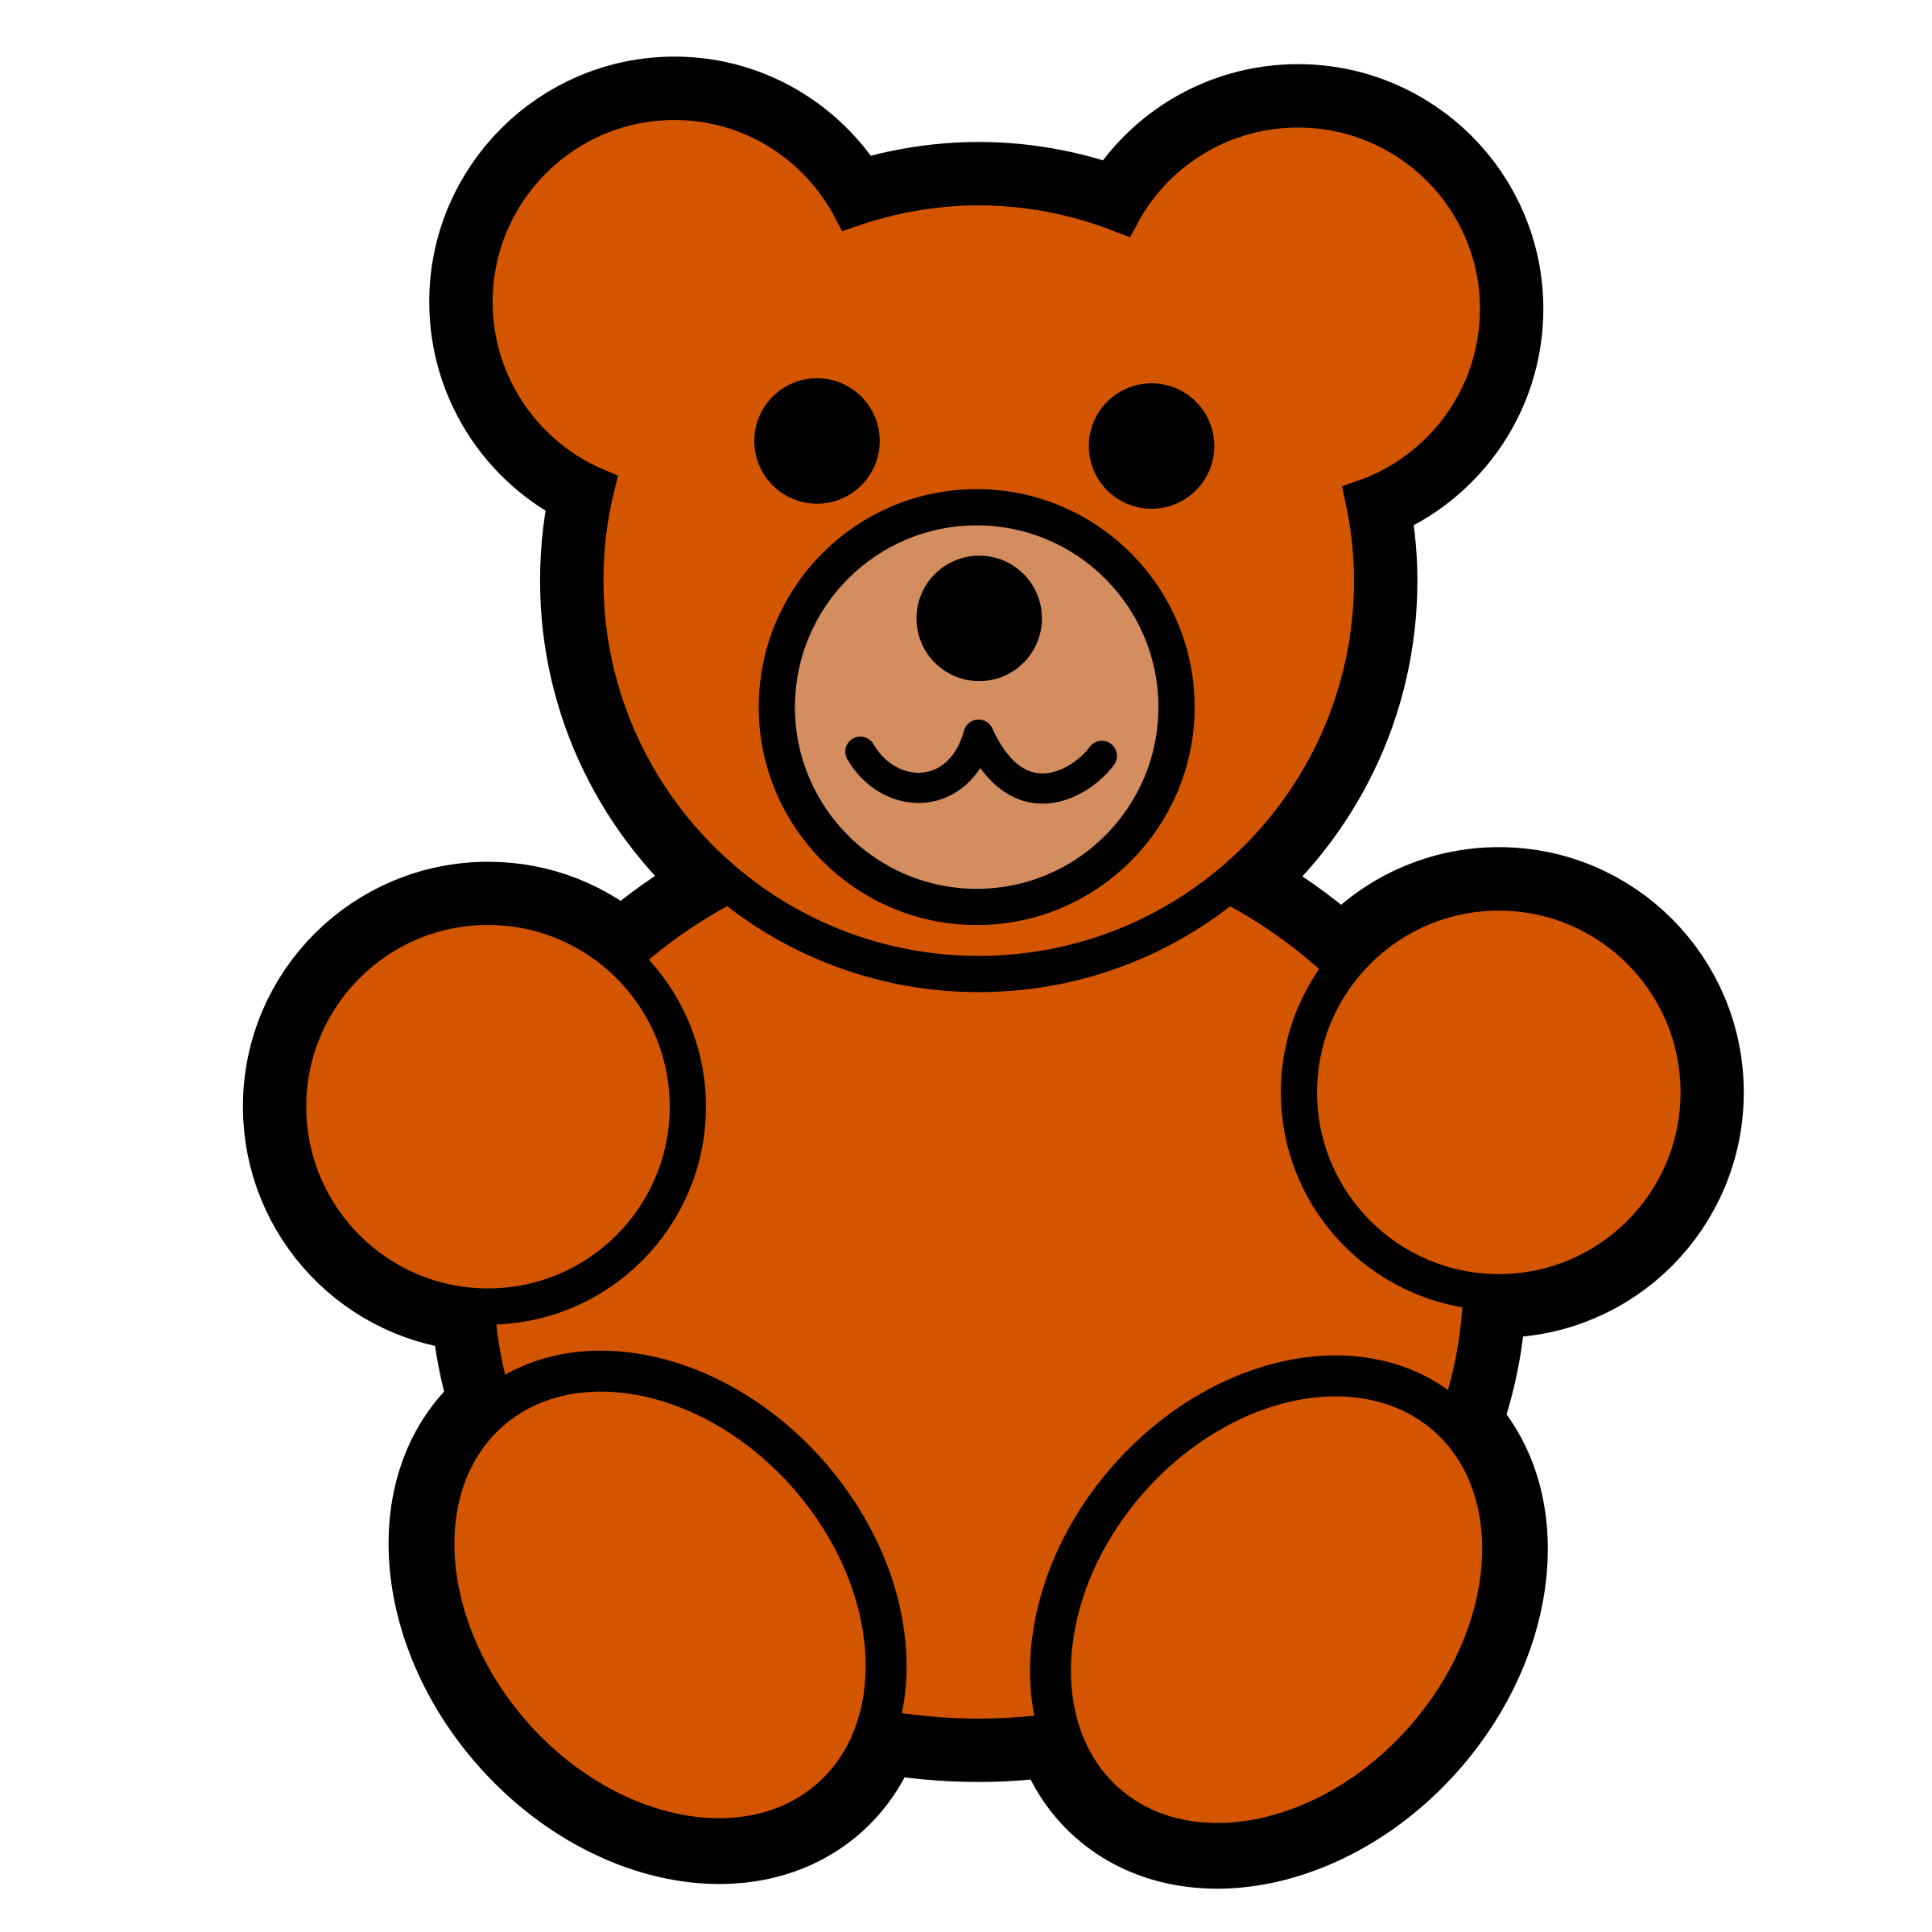 jpg freeuse download Clipart teddy bear. Icon big image png